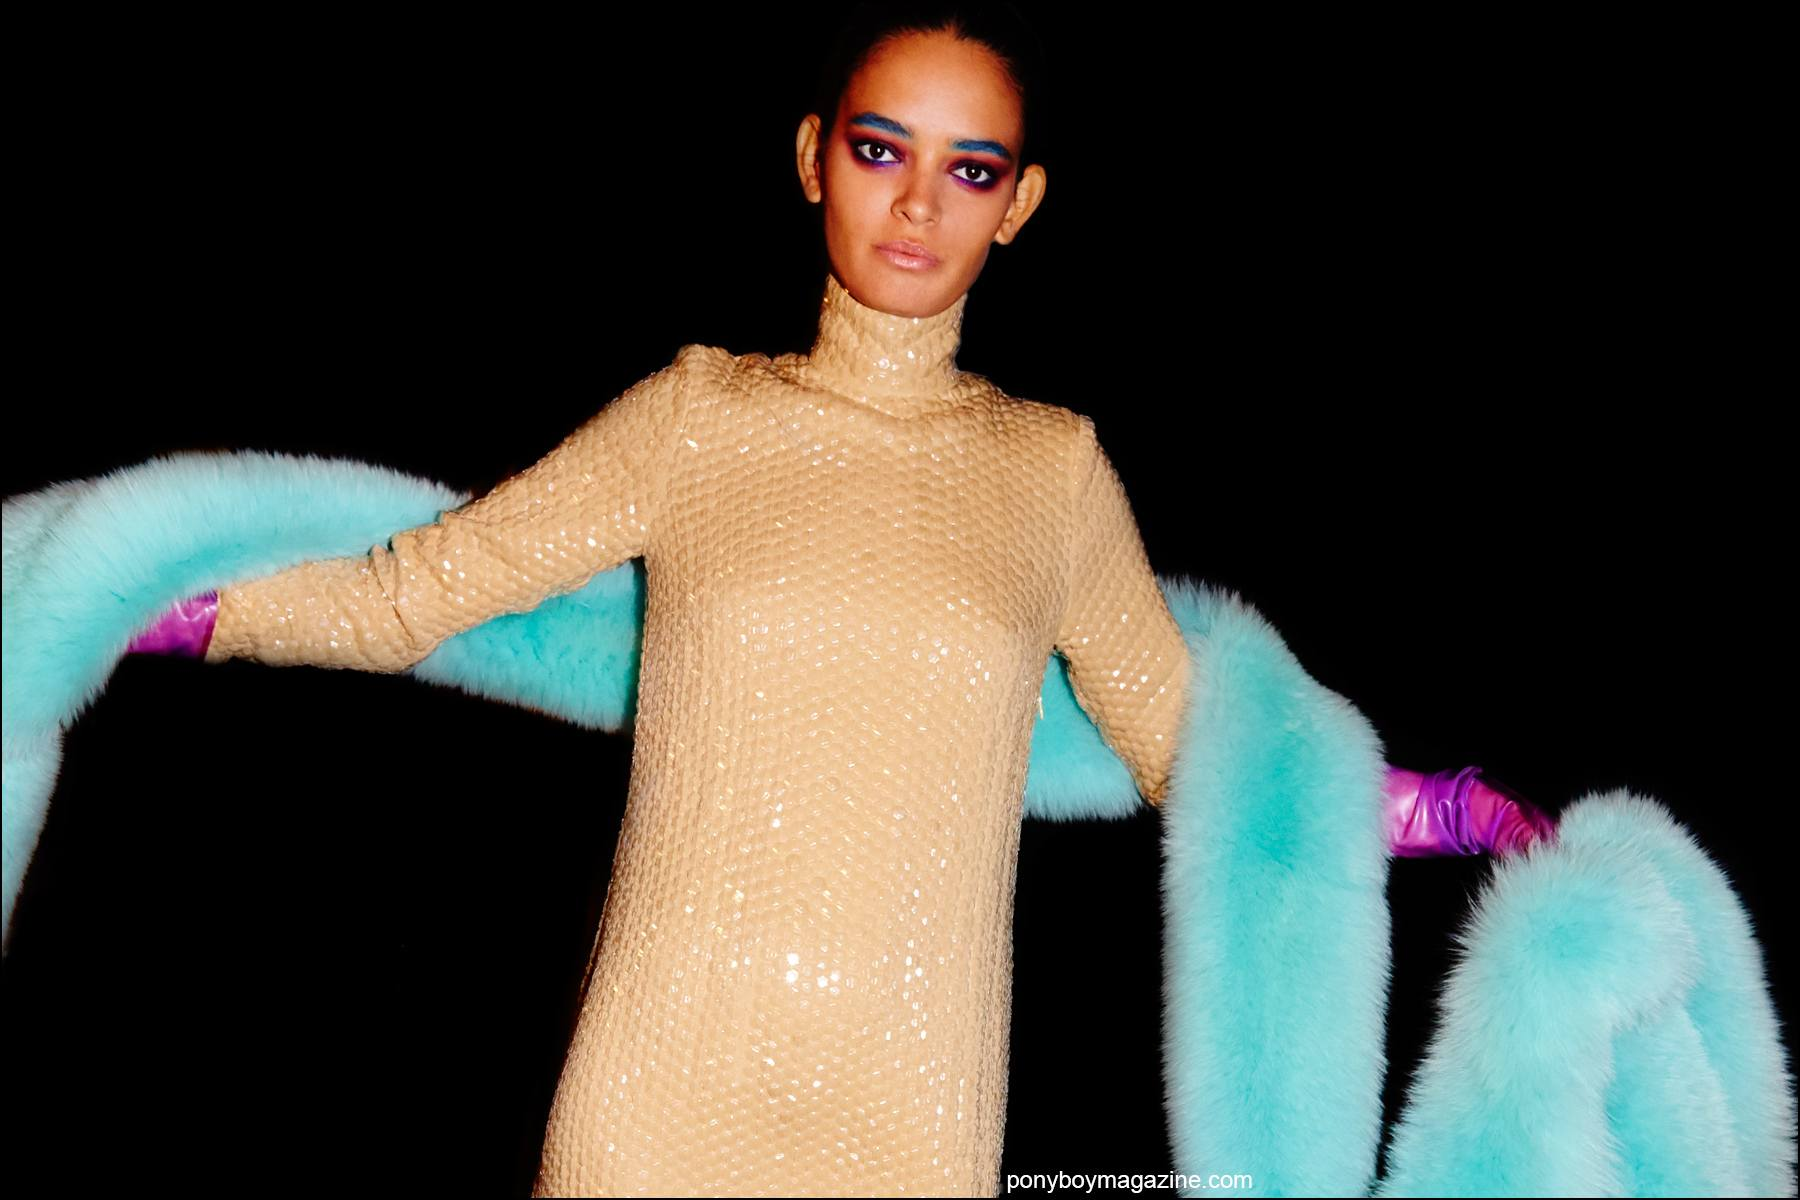 A sequined gown with mint fur stole, photographed backstage at Georgine Spring/Summer 2016 womenswear collection. Photographed by Alexander Thompson for Ponyboy magazine NY.